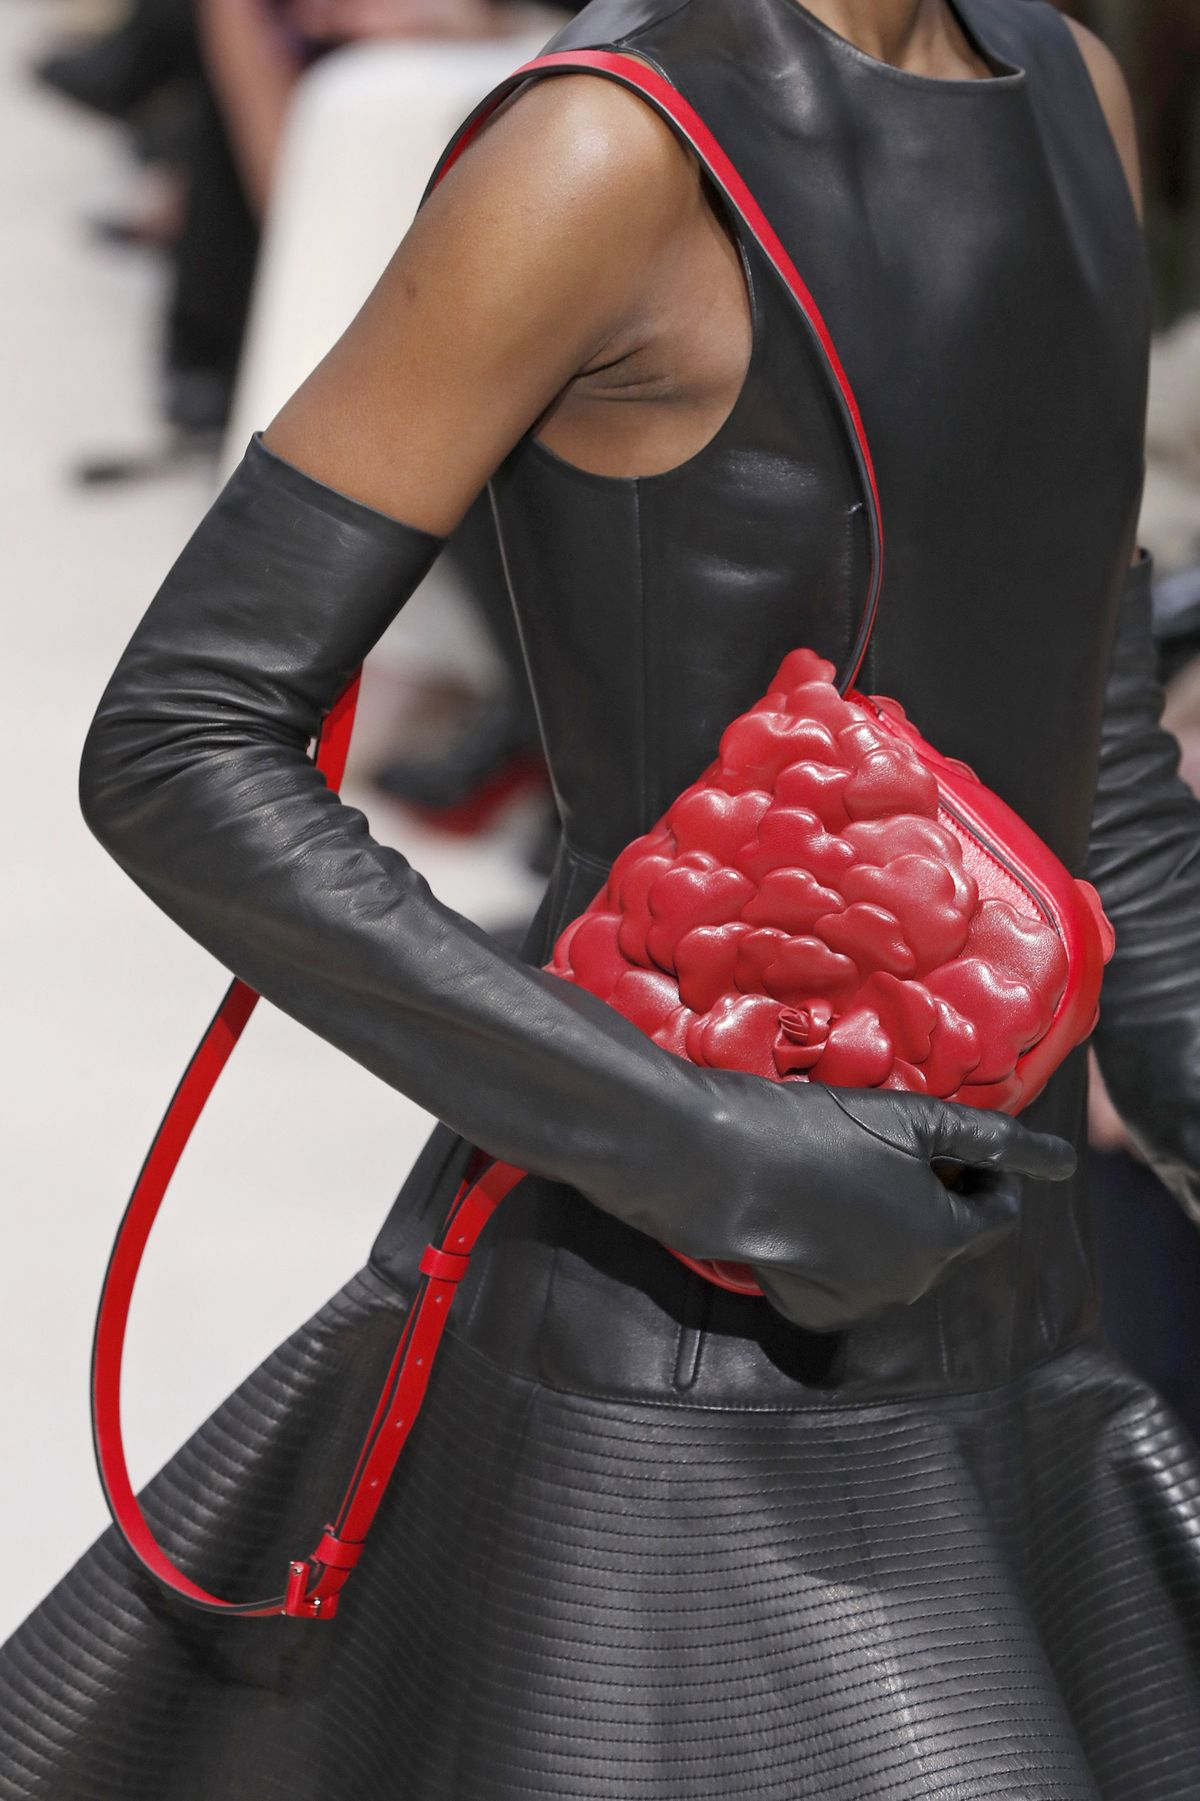 Valentino Handbags vom Luxuslabel Valentino - Herbst/Winter 2020 (ddp images)